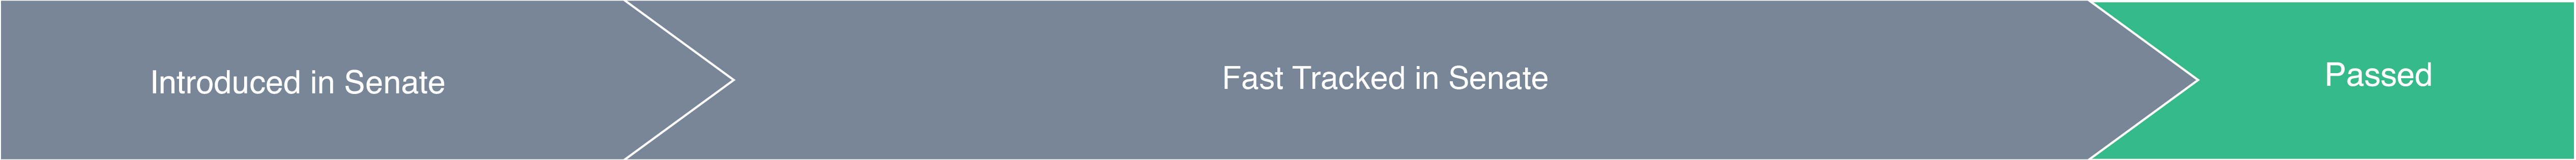 Trackers_Single_SenateFastTrack-01